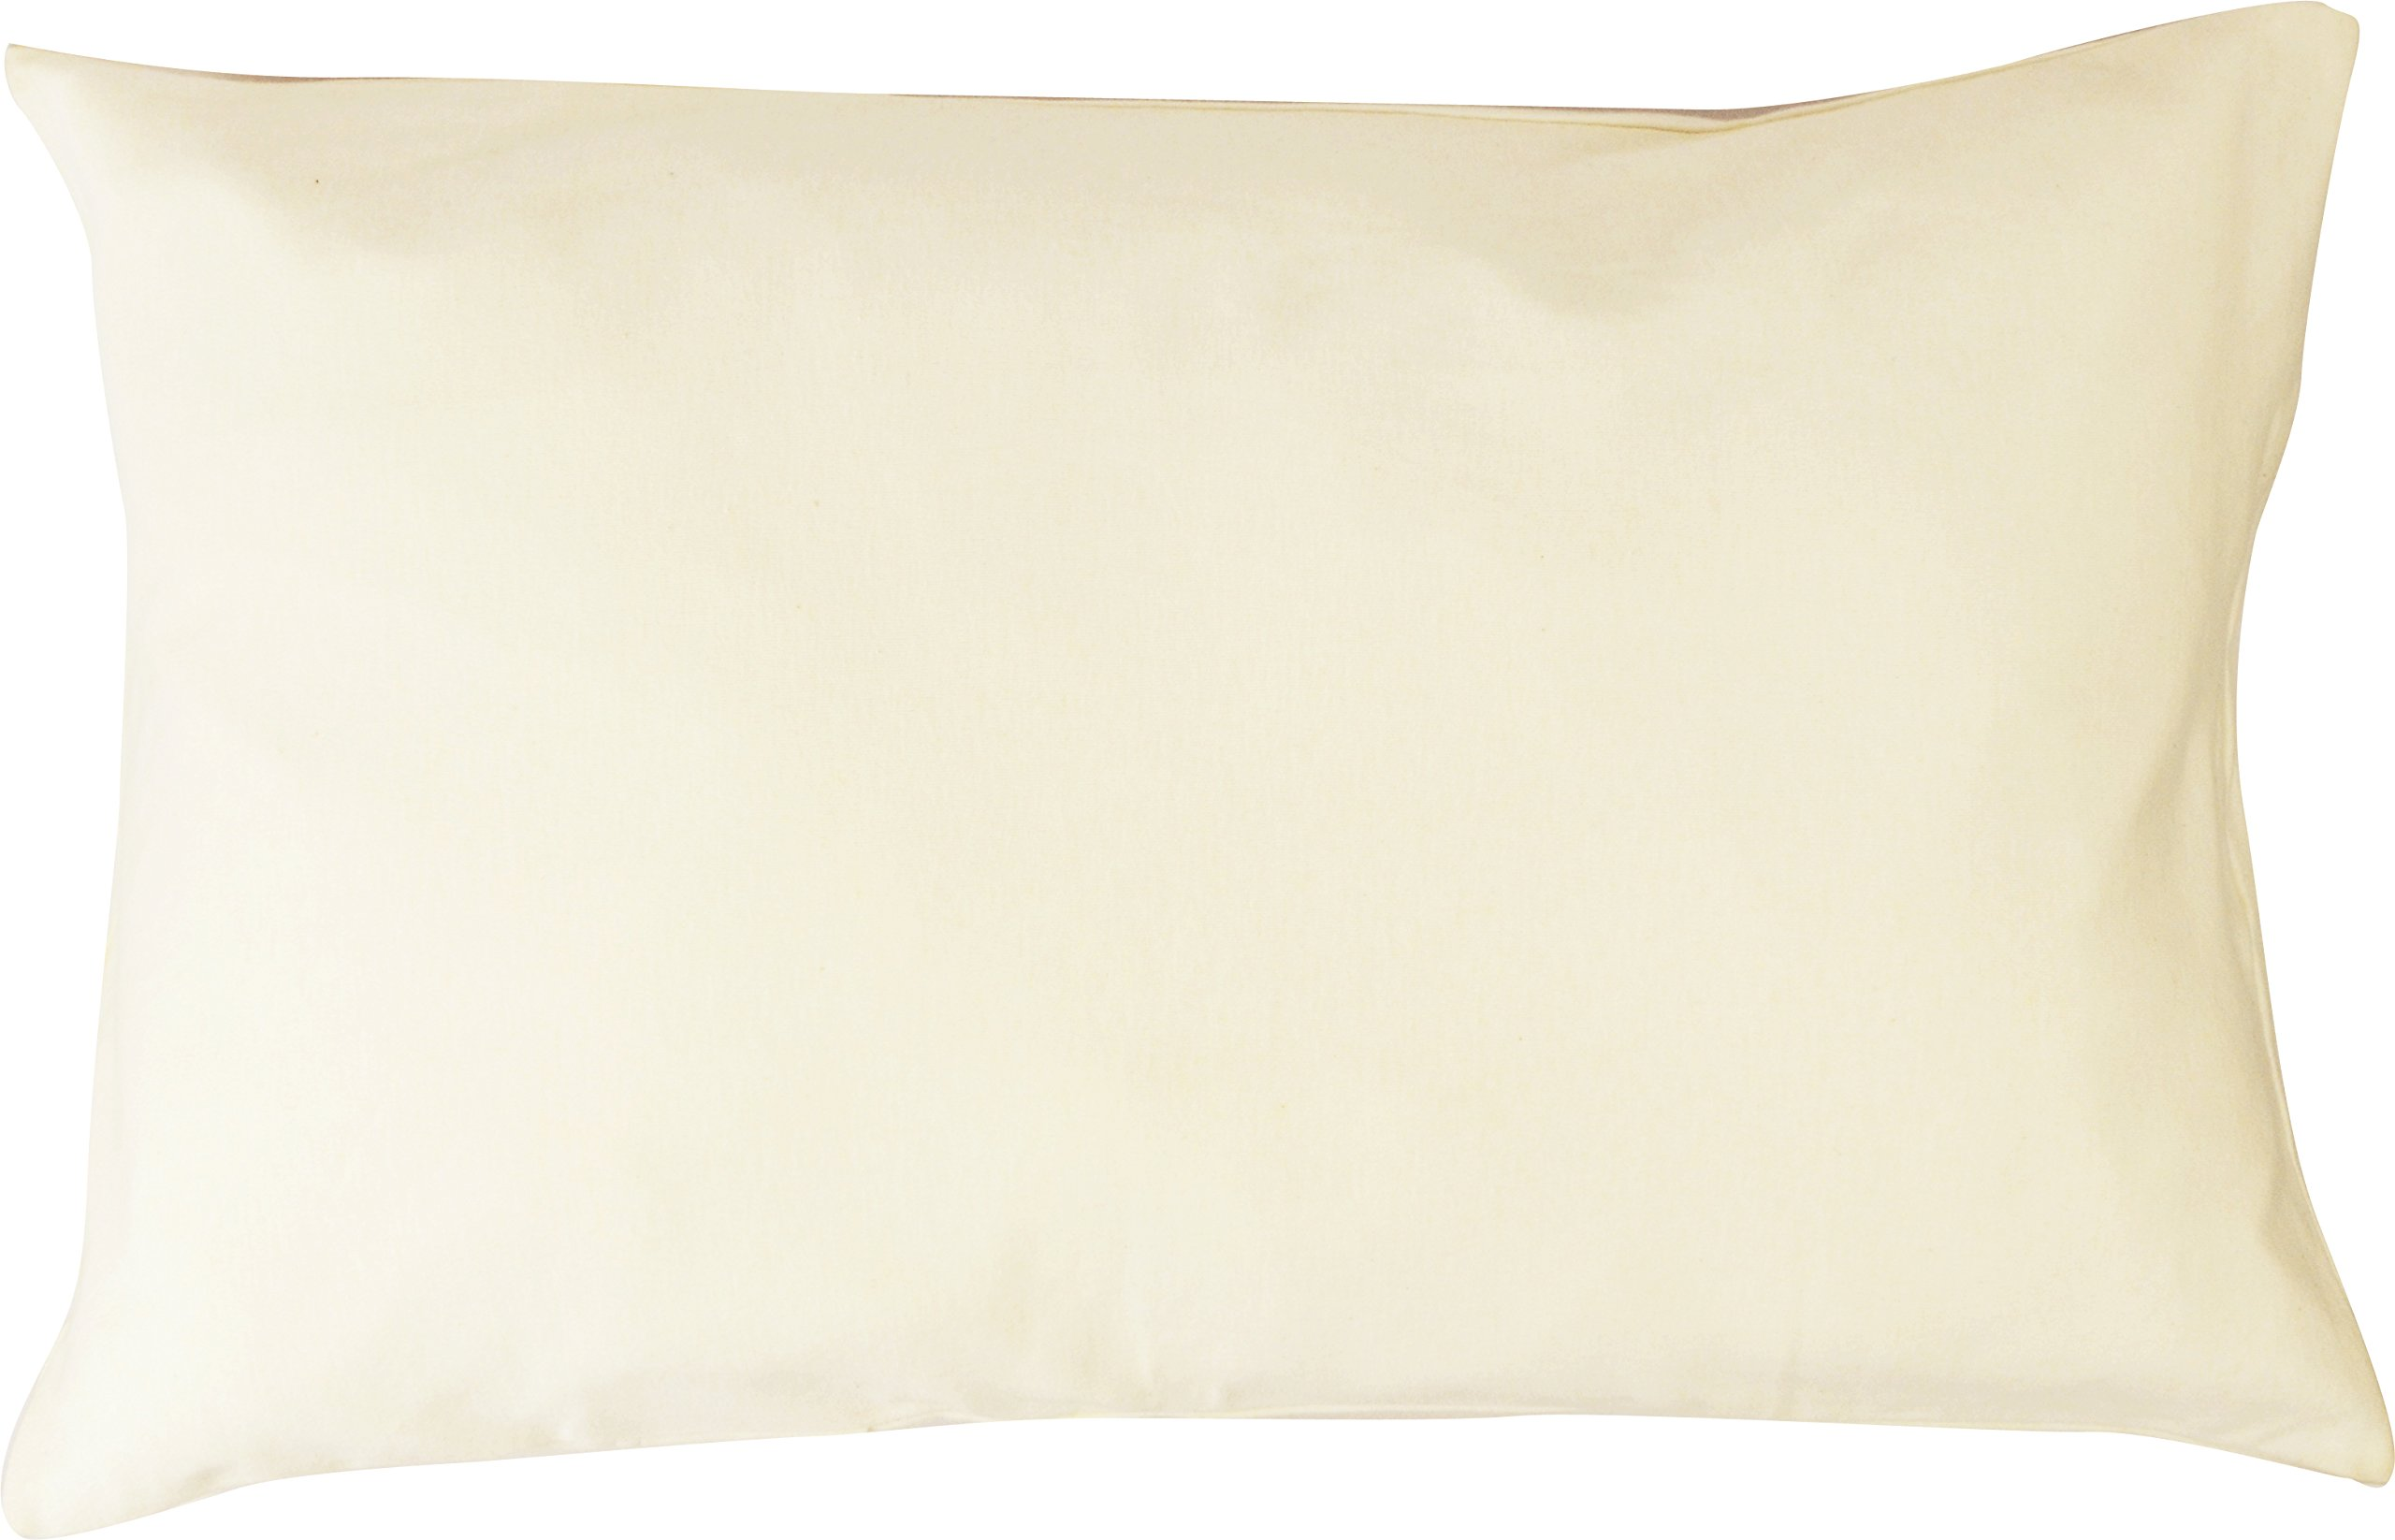 DorDor & GorGor ORGANIC Toddler Pillowcase,Envelope Enclosure, 100% Cotton (BE)